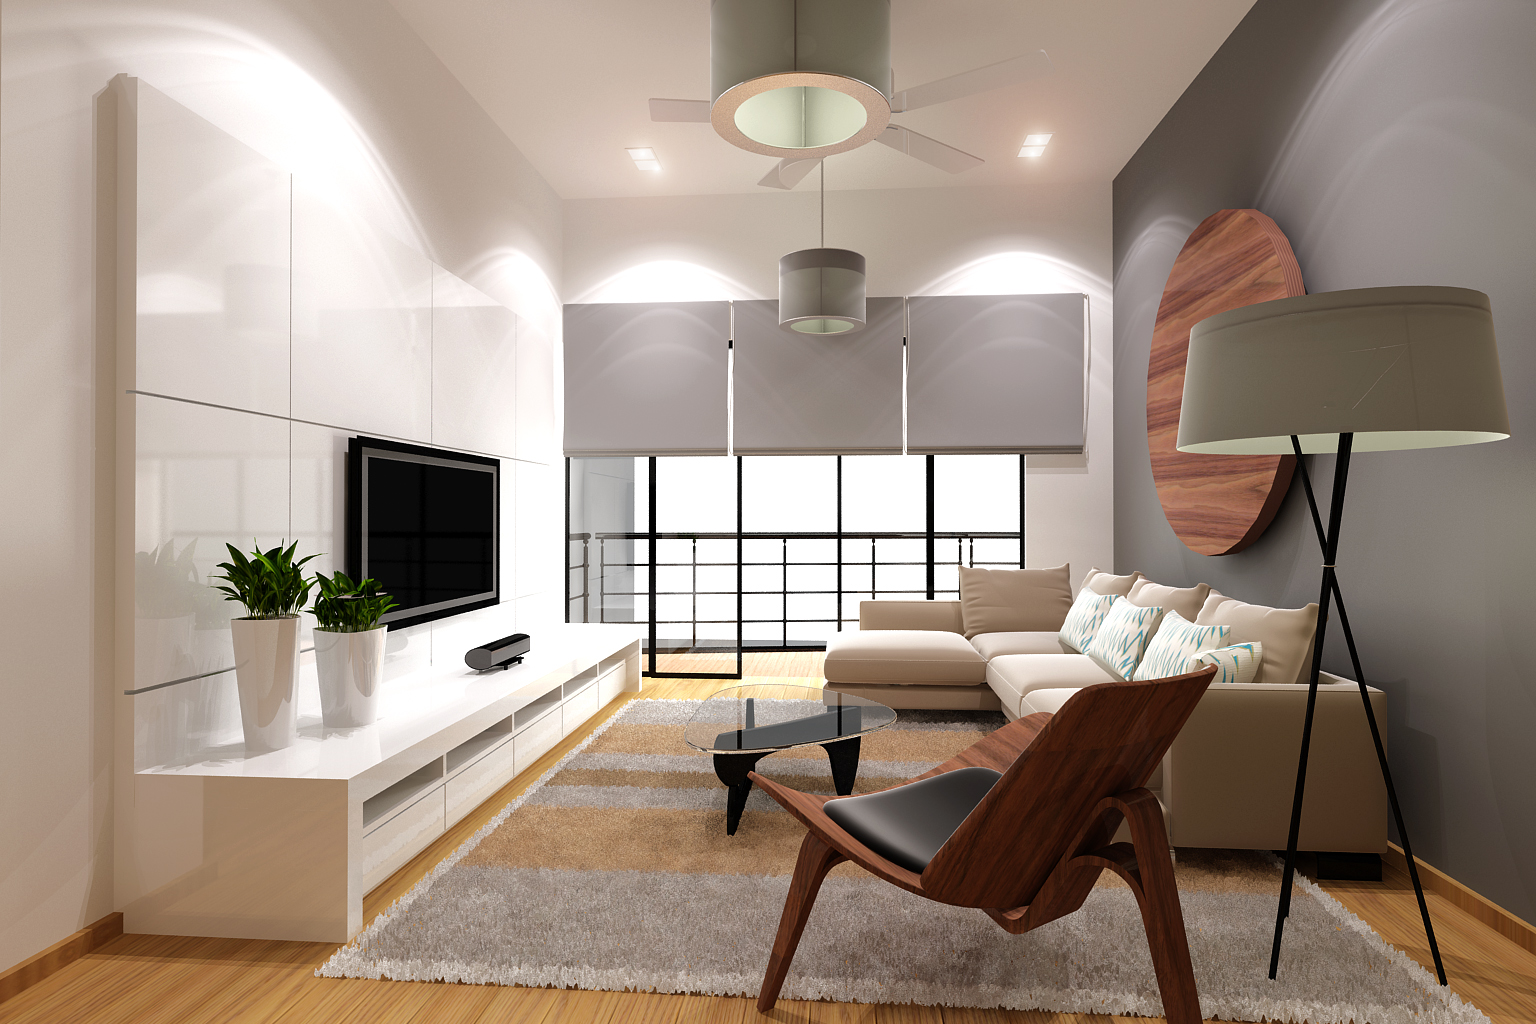 Interior Design Concepts For Apartments